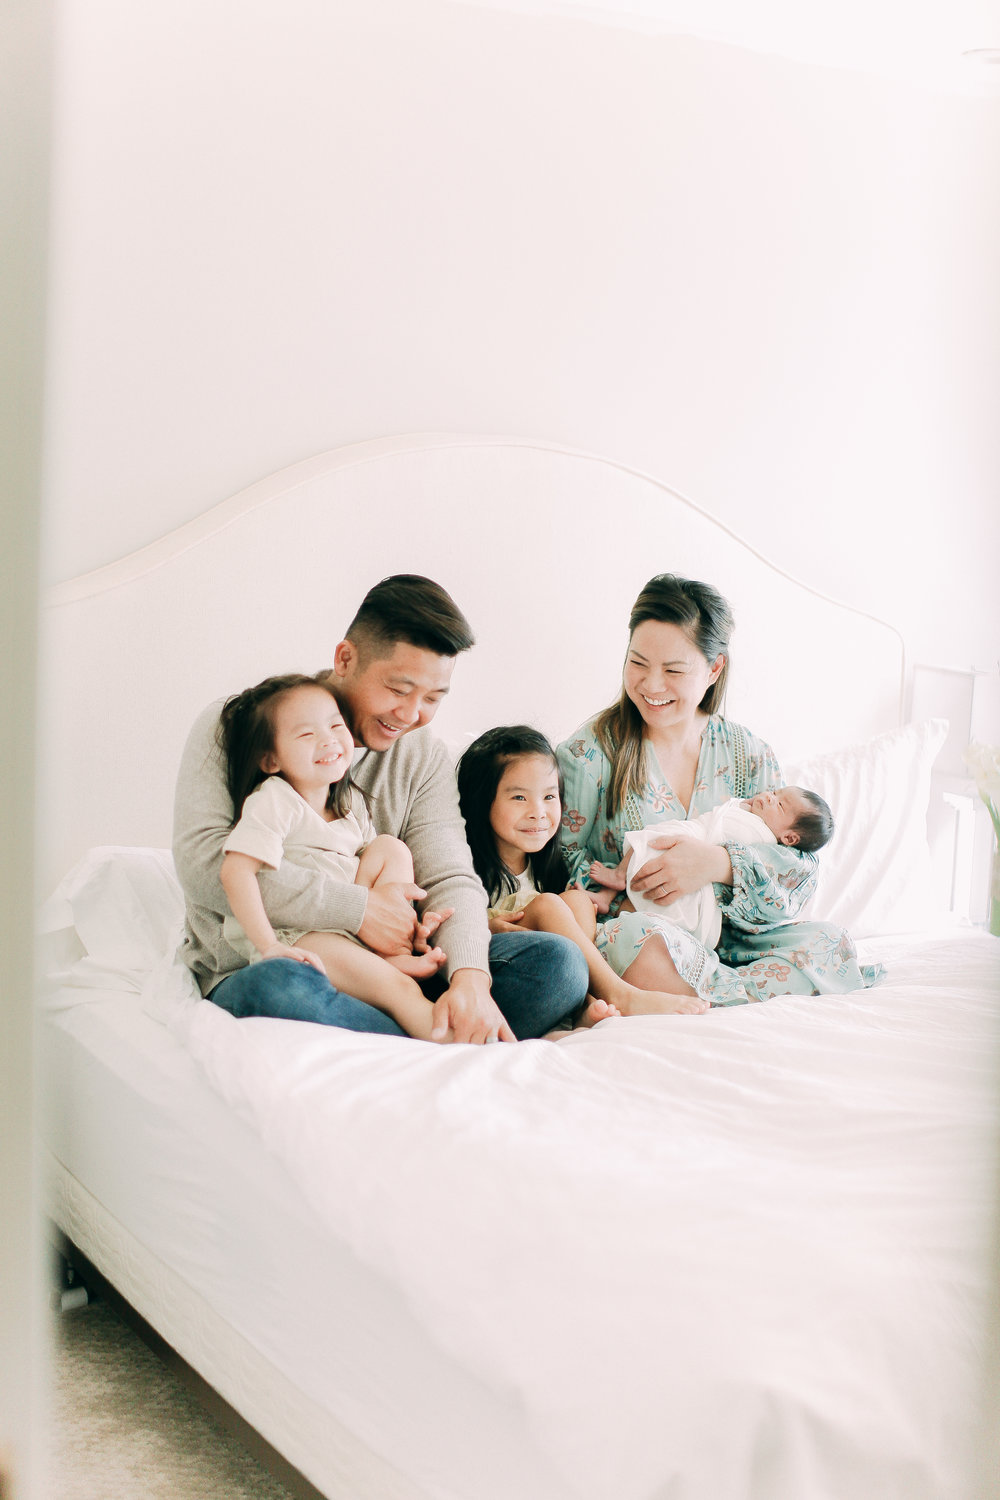 Cori Kleckner Photography- Uyen Family Session 1-144.JPG